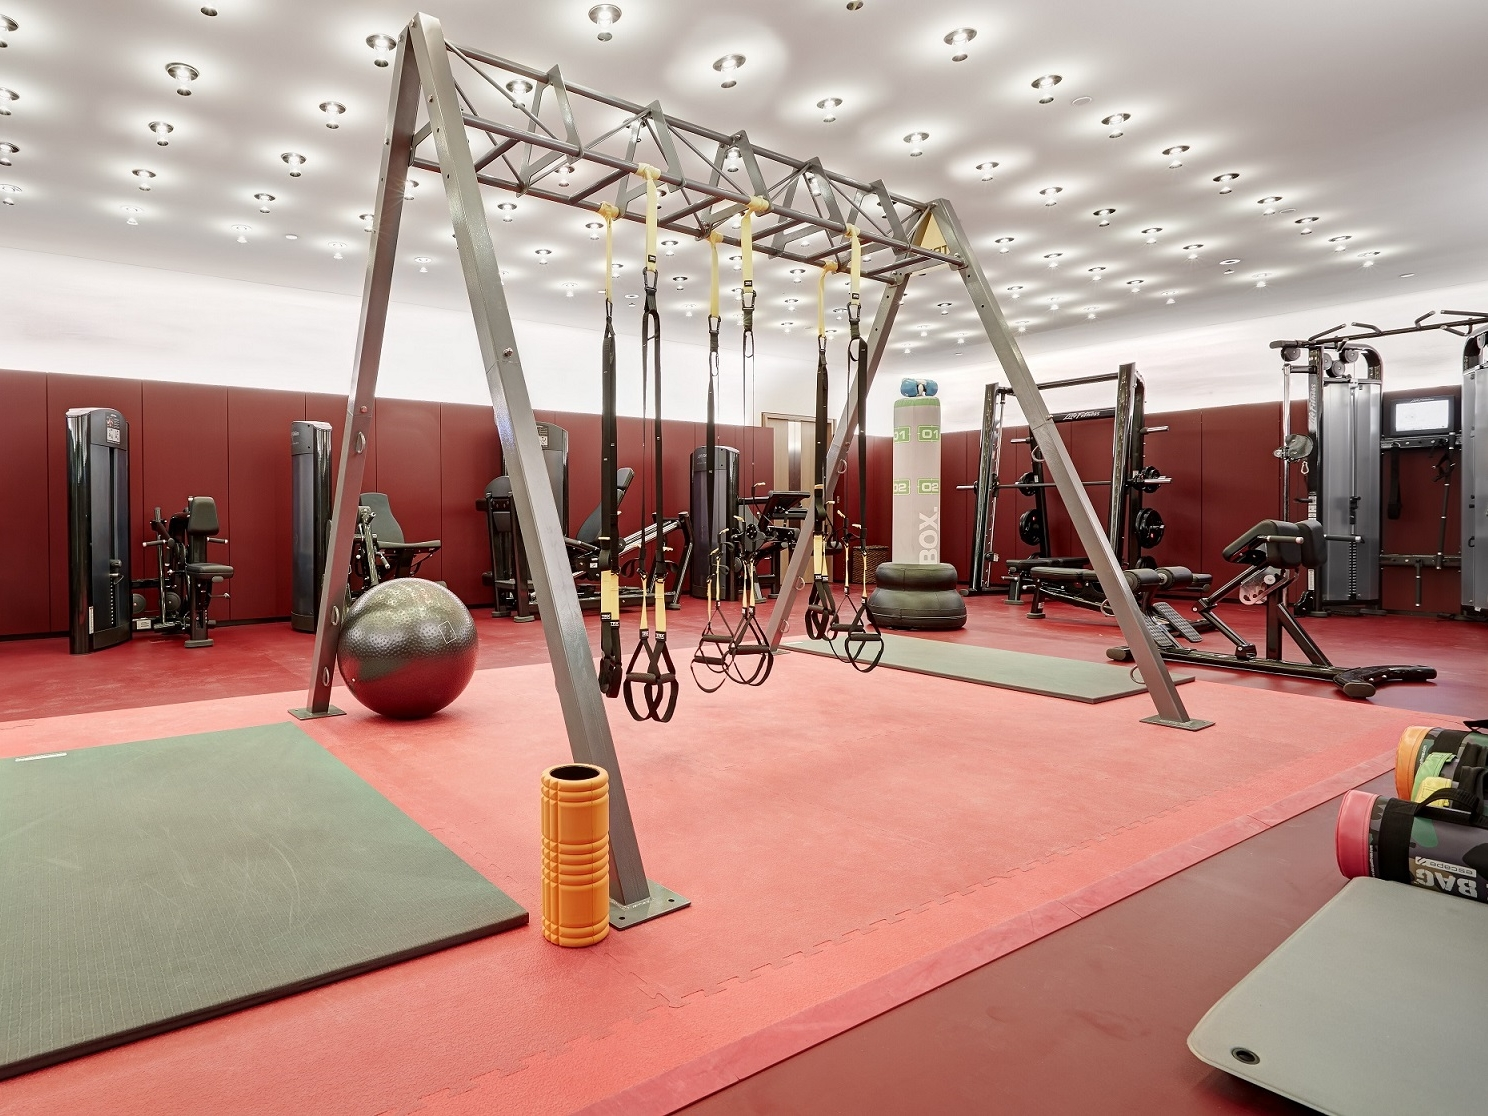 akasha holistic wellbeing centre gym hotel cafe royal londres